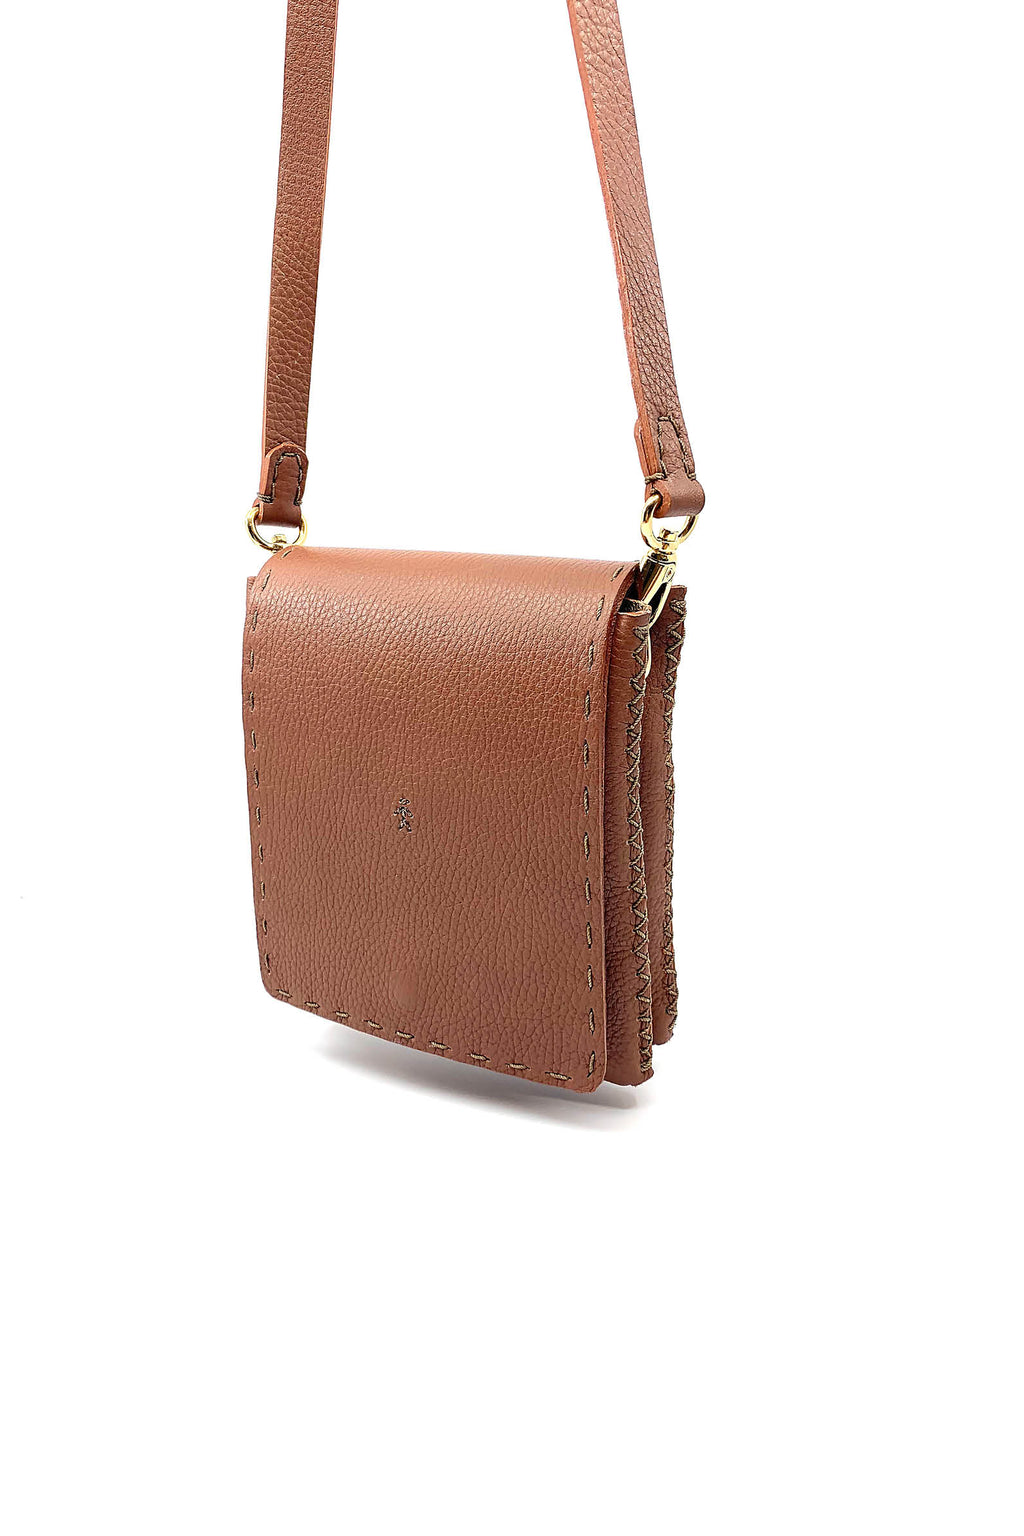 HENRY BEGUELIN COGNAC LEATHER SQUARE BAG